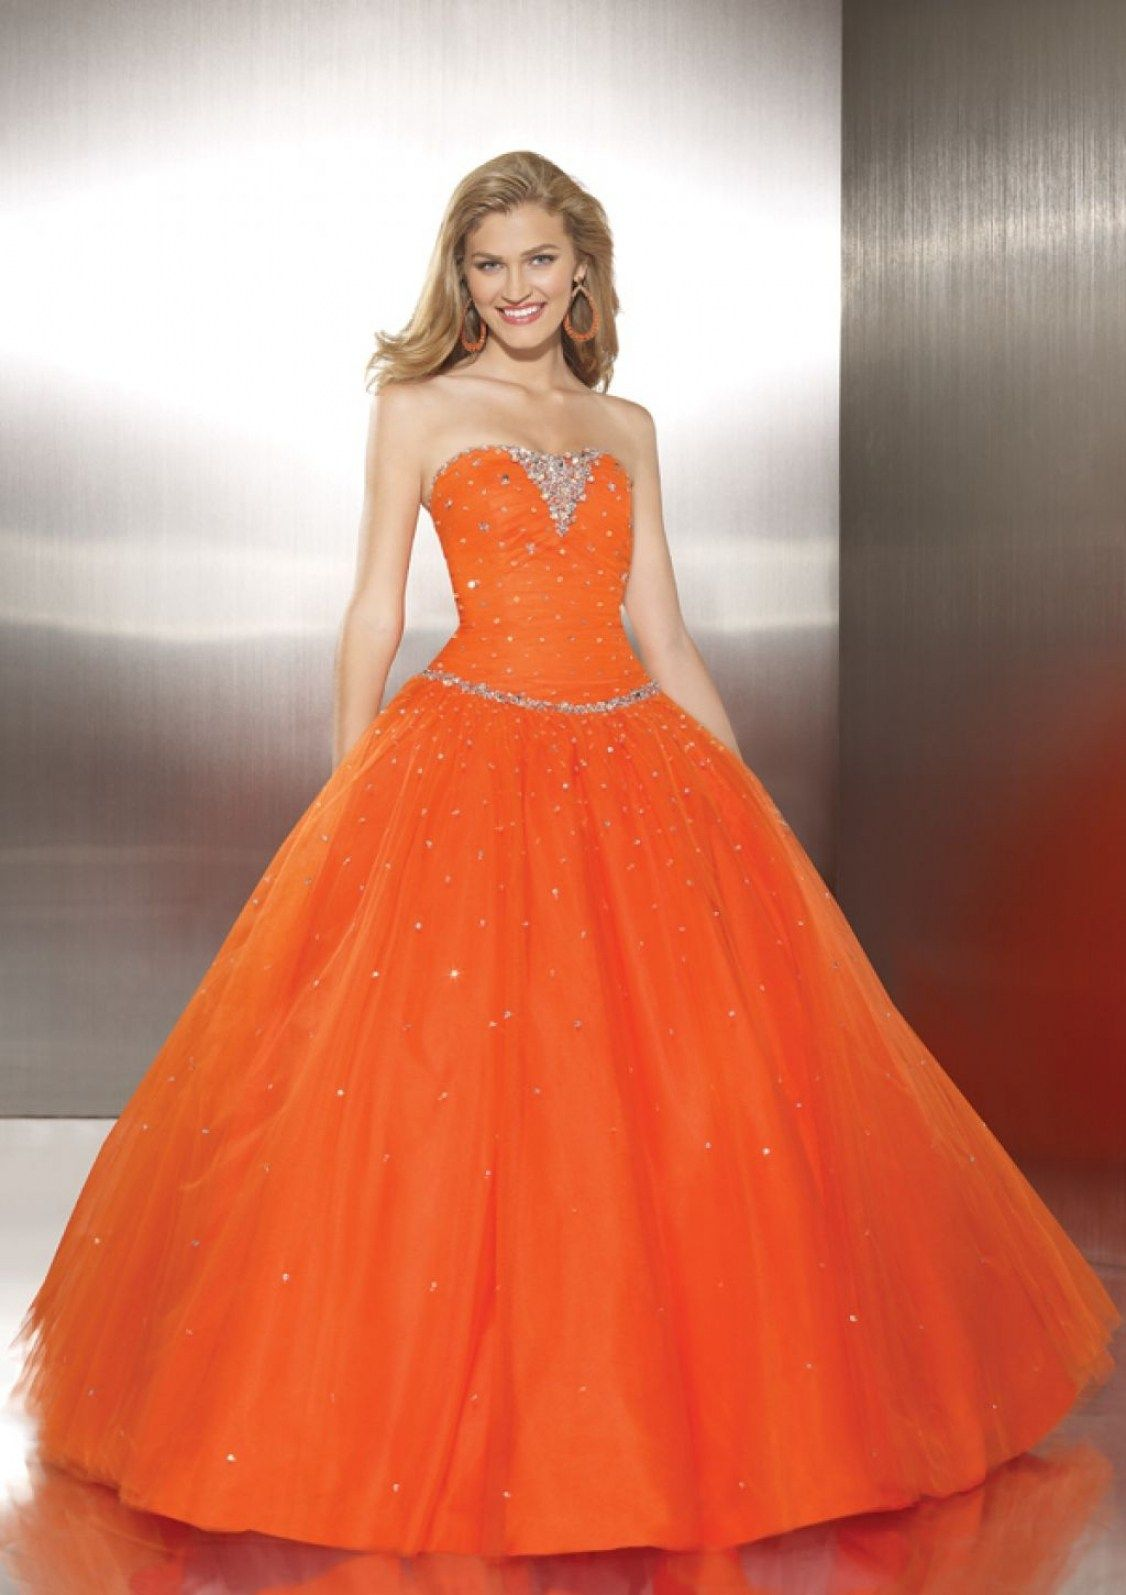 30 Beautiful White And Orange Wedding Dress Best Inspiration Orange Dress Wedding Orange Dress Dresses